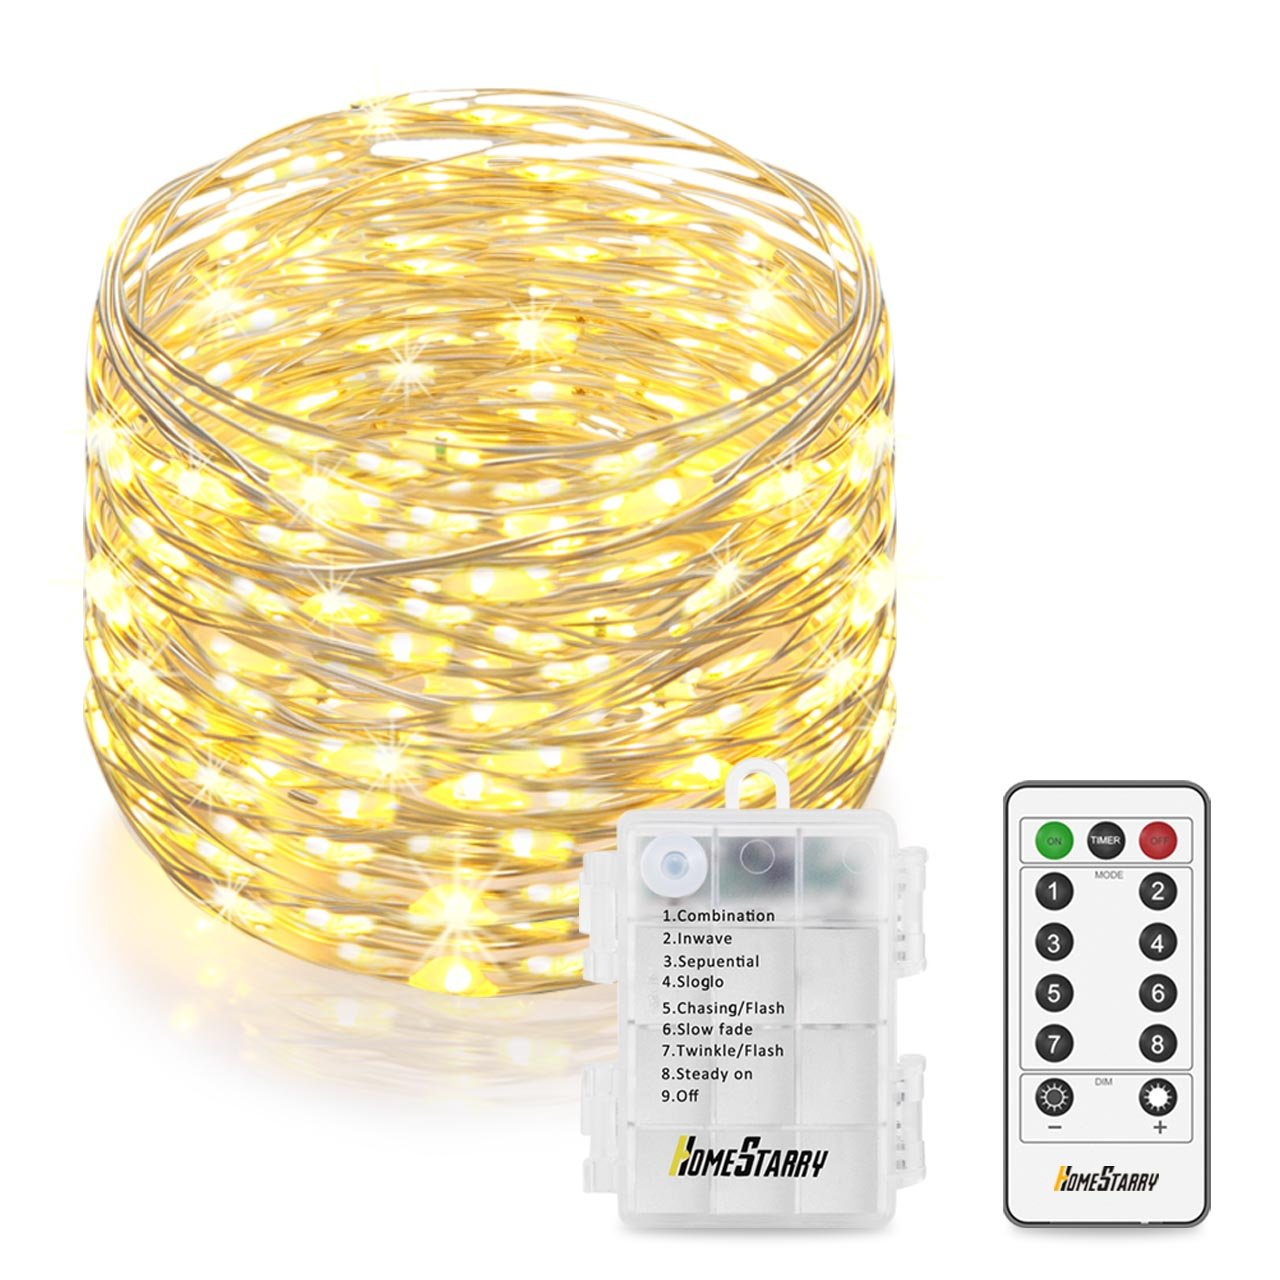 Homestarry LED String Lights, Battery Powered String Lights With Remote, 33feet/132leds Indoor Decorative Silver Wire Lights for Bedroom, Patio, Outdoor Garden, Party, Wedding, Christmas Tree. HS-B-SL-011